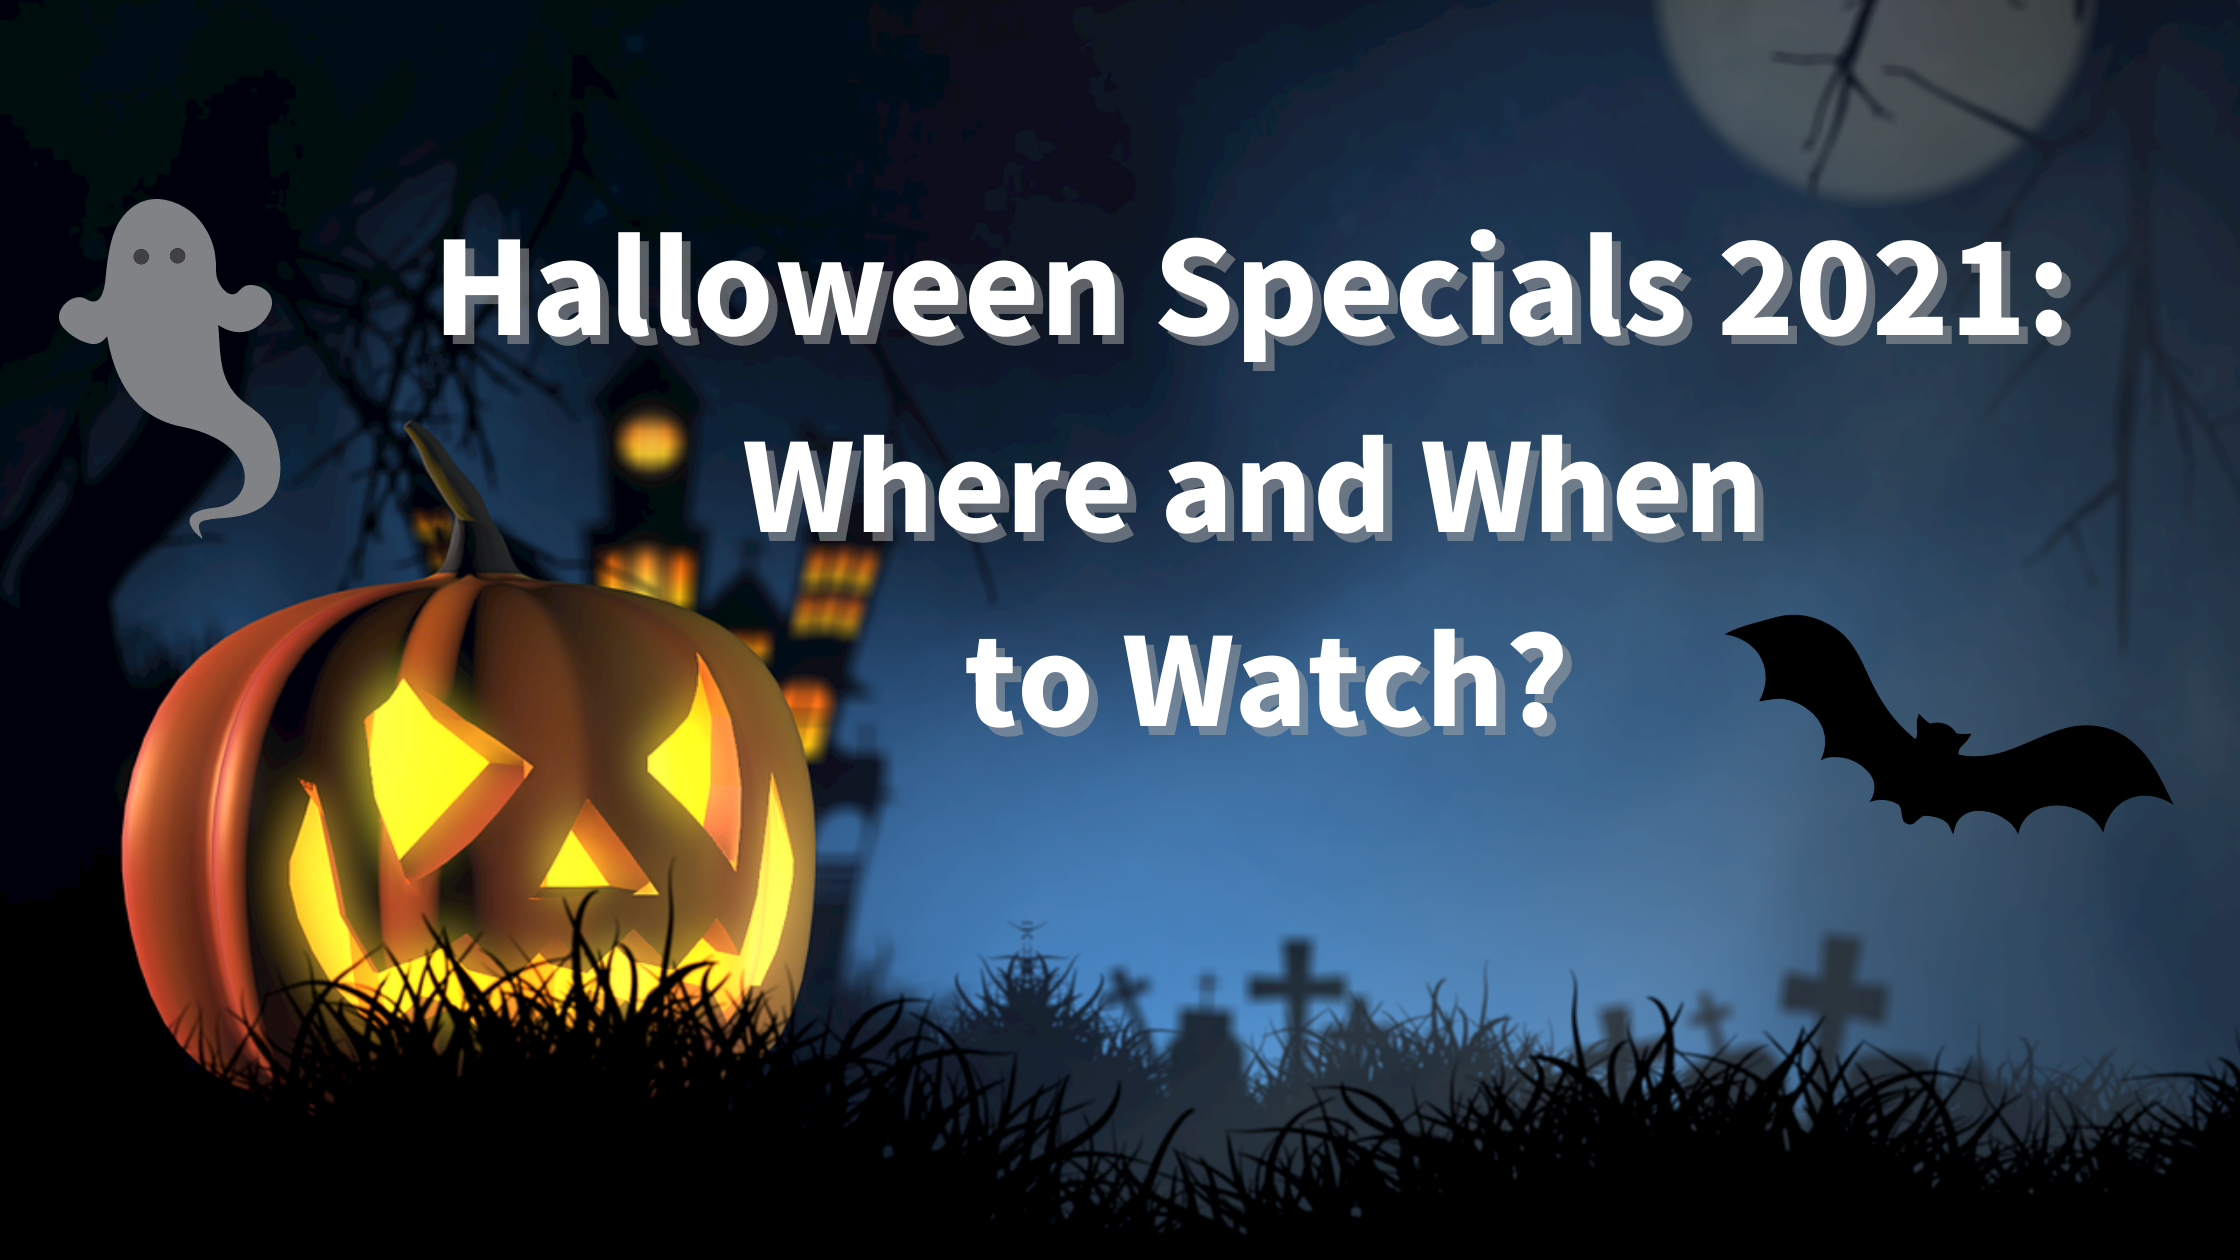 Halloween Specials 2021: Where and When to Watch, spooky halloween night sky with pumpkin, bat and ghost